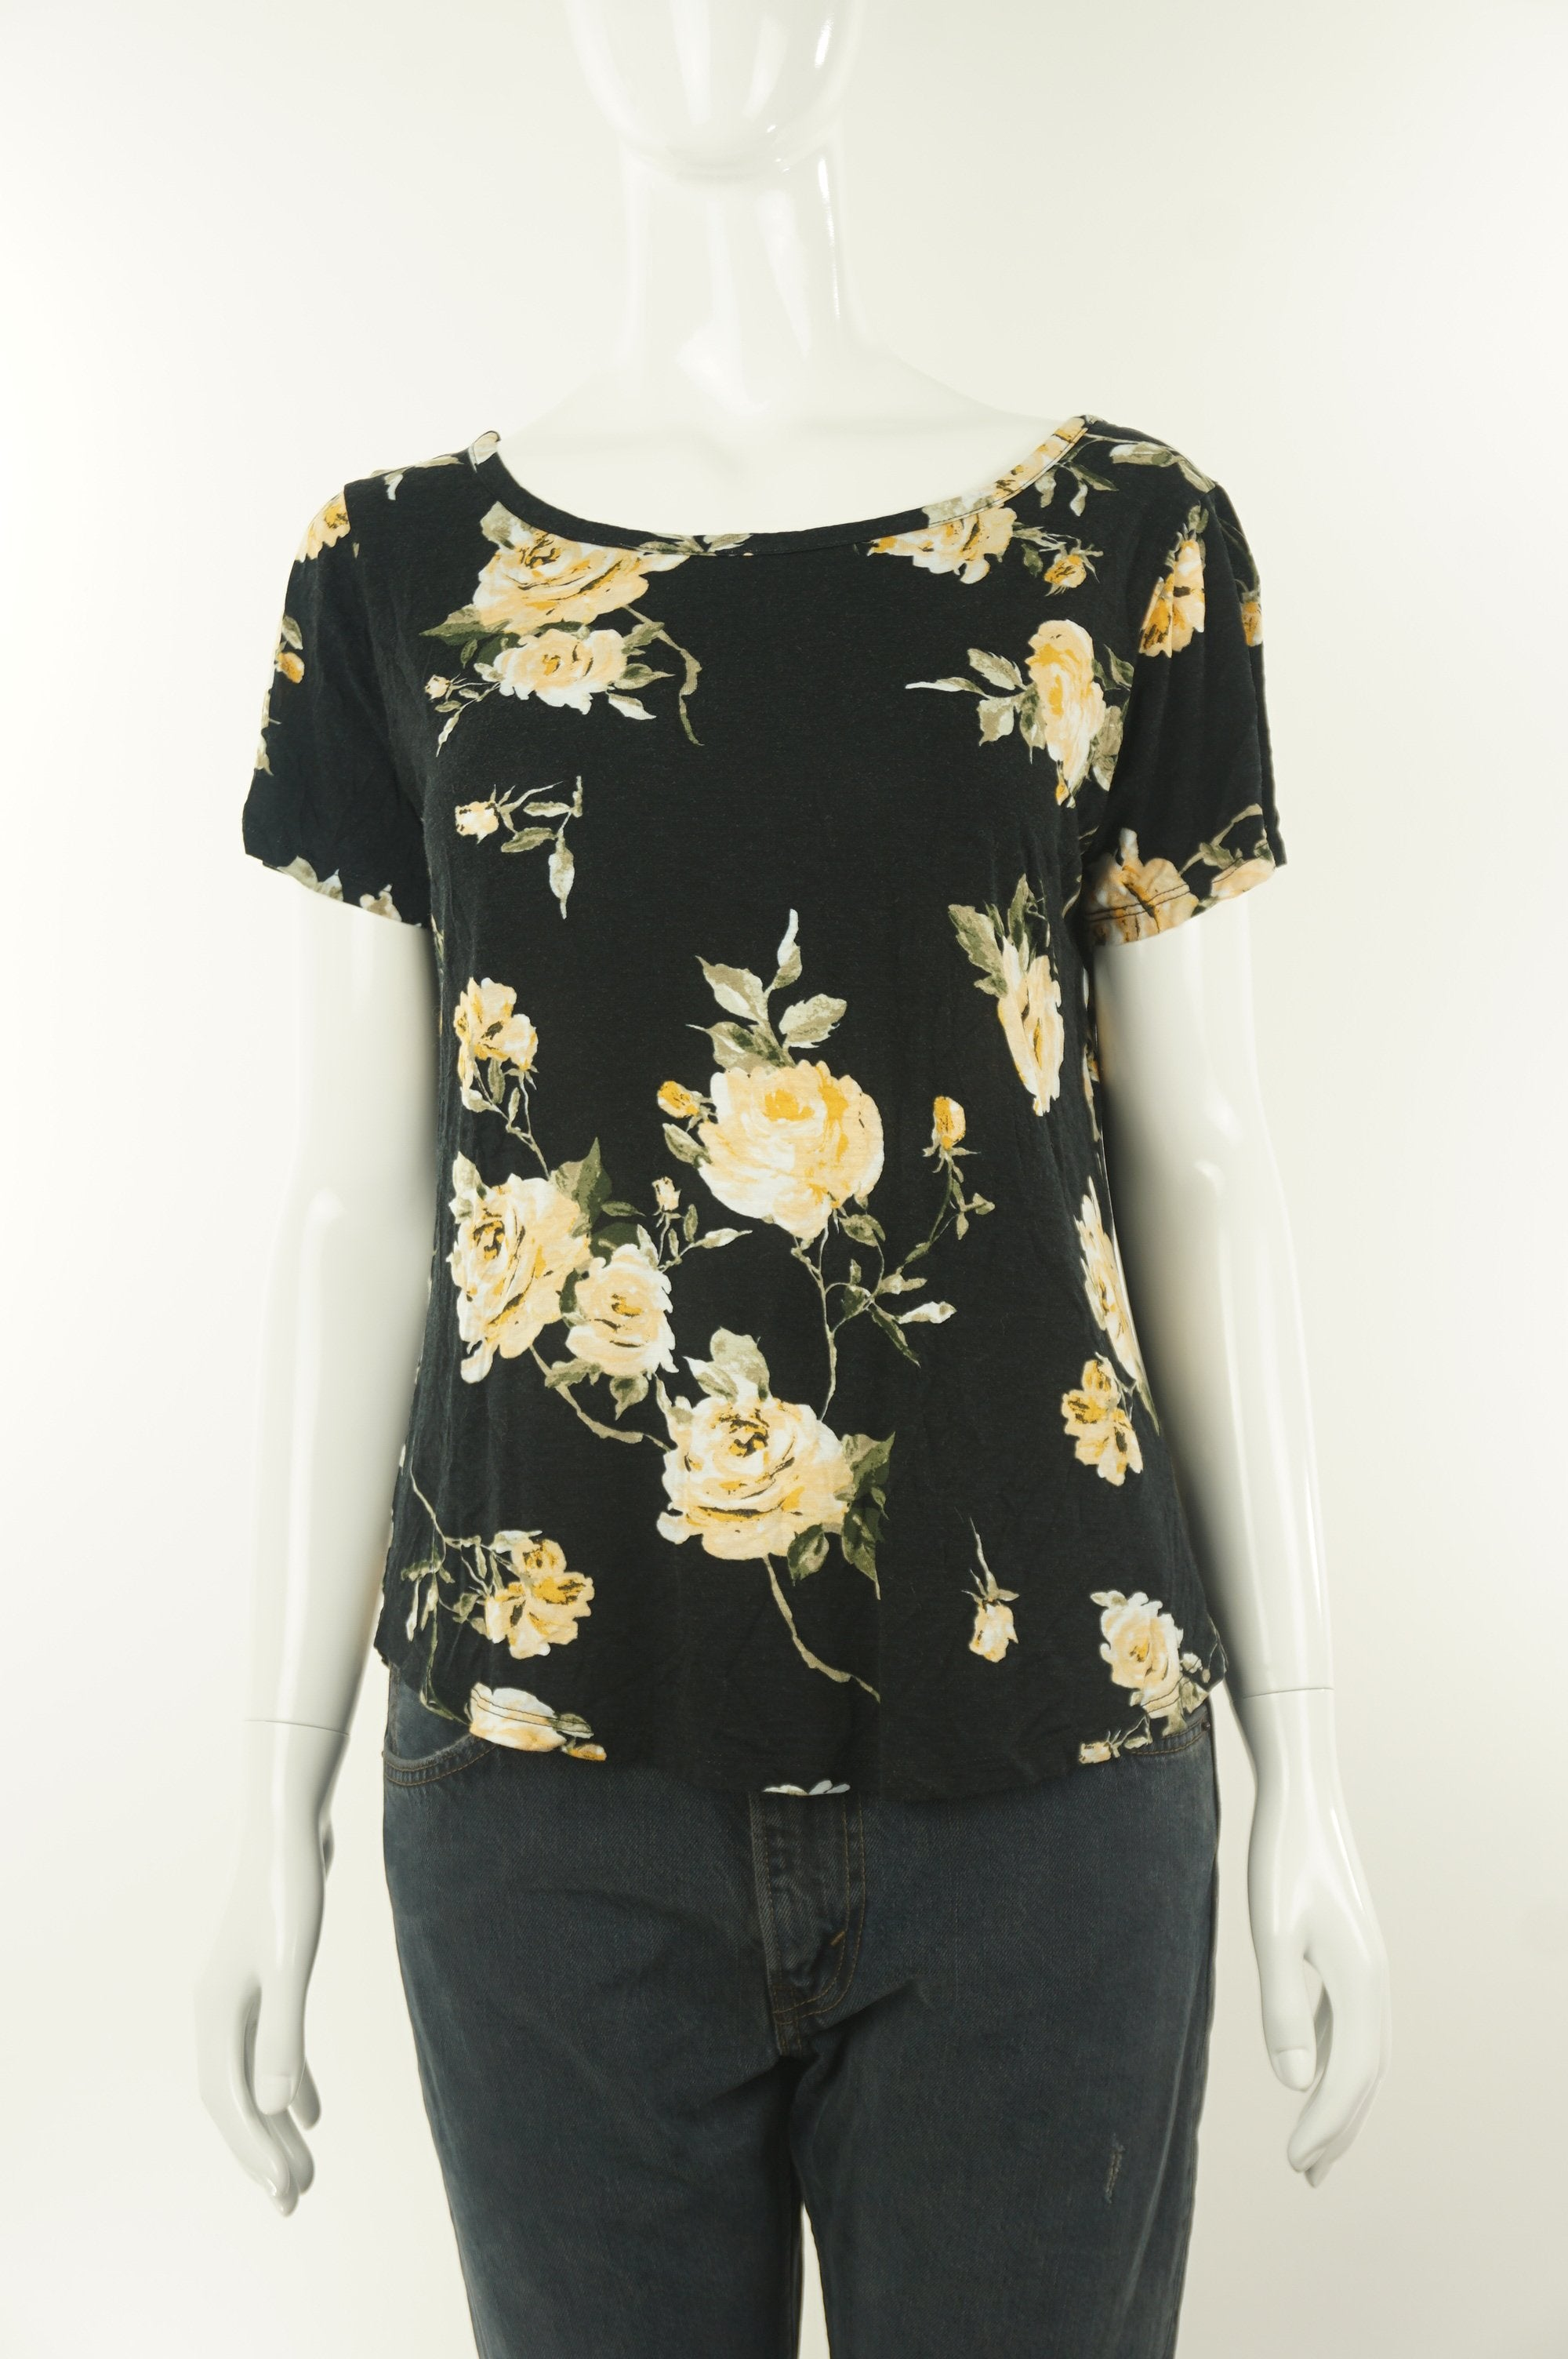 Dynamite Soft rose-patterned shirt, Get all rosy and feminine with this soft flower-pattern simple yet elegant shirt, Black, 100% Rayon, women's Tops, women's Black Tops, Dynamite women's Tops, dynamite women's top, women's soft shirt, women's soft floral blouse with open back